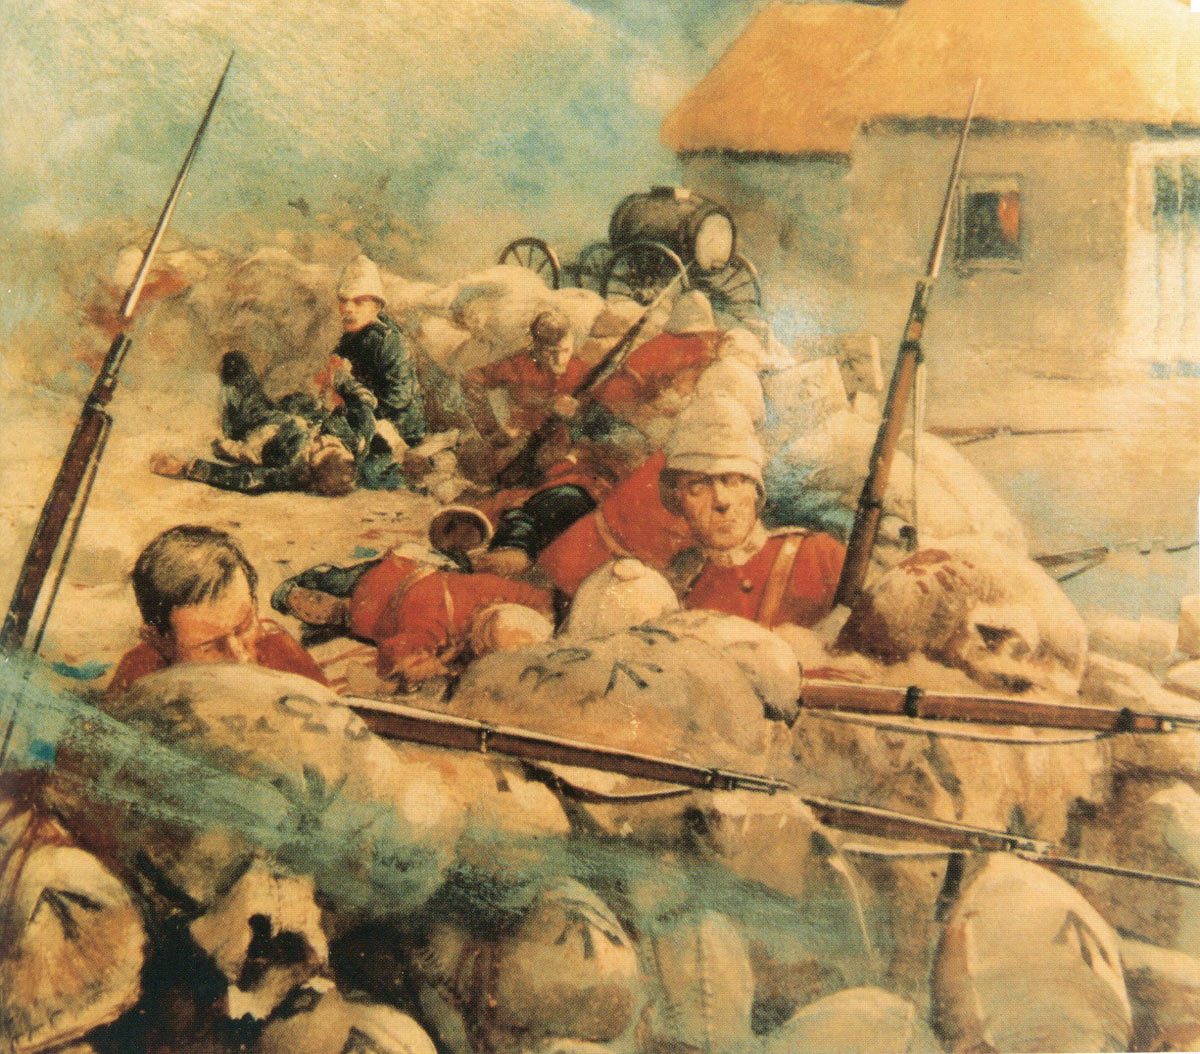 The defence of Rorke's Drift on 22nd January 1879 in the Zulu War